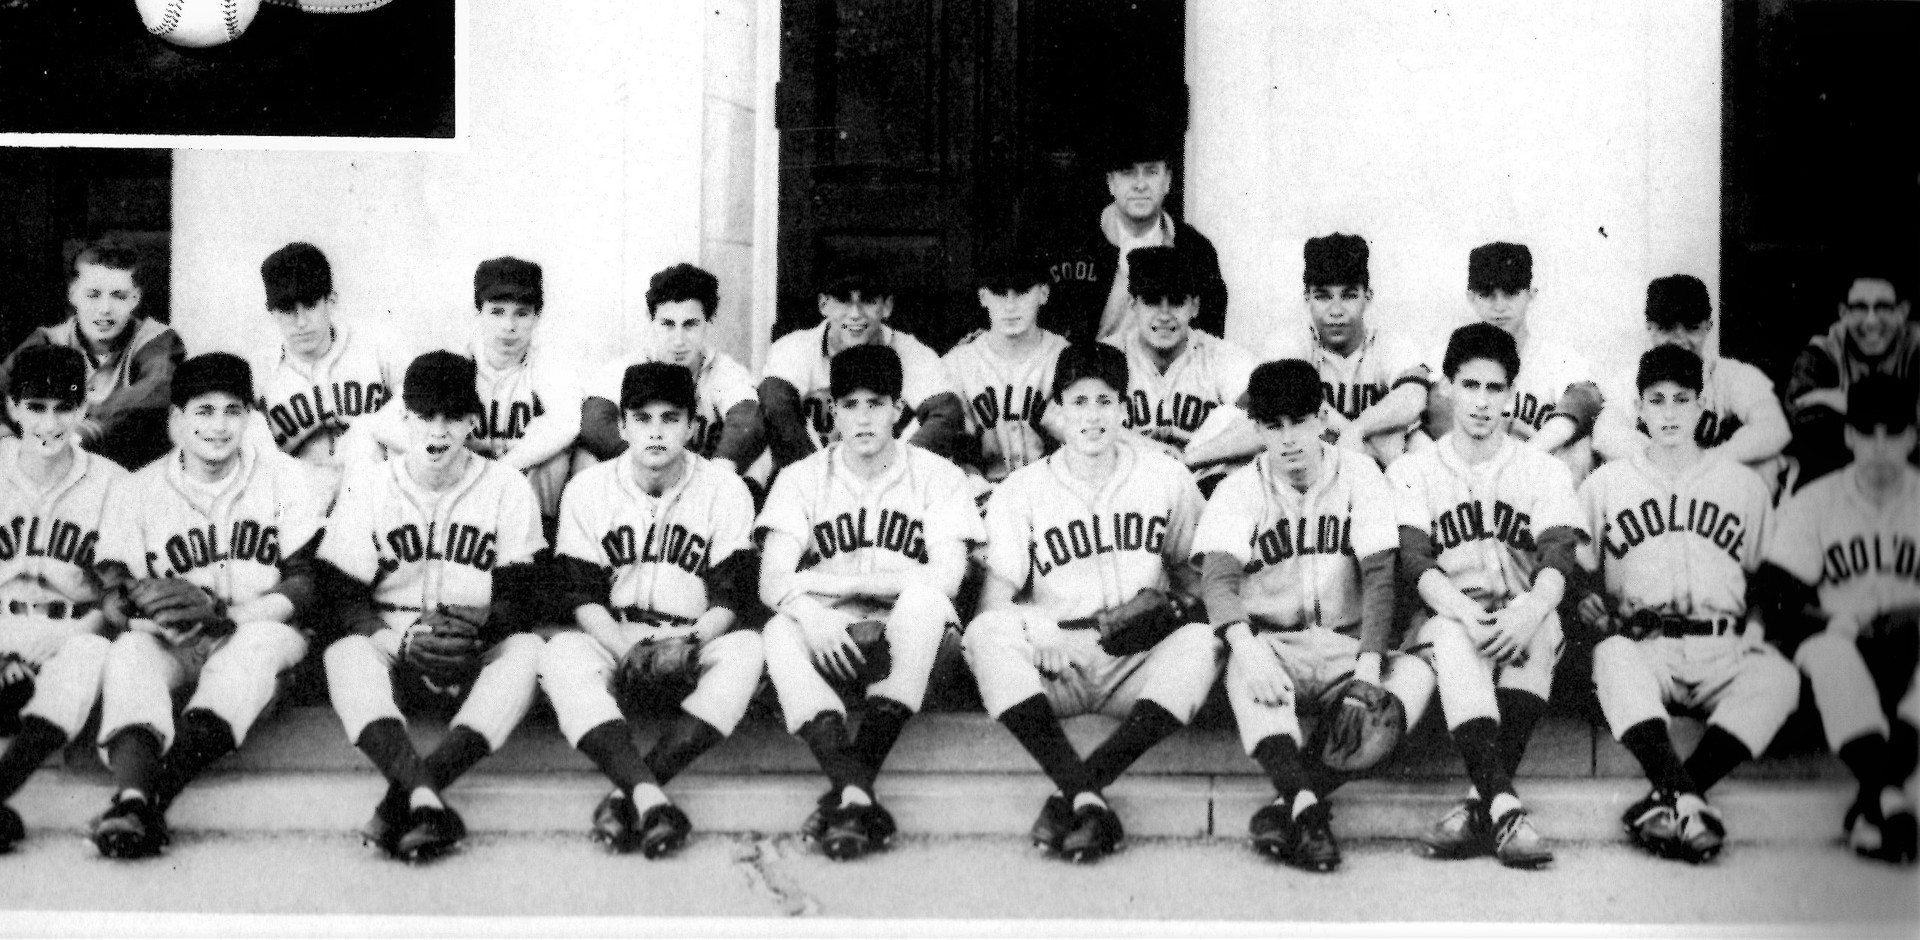 Price, pictured in the top row, fourth from the right, on the baseball team at Coolidge in his senior year